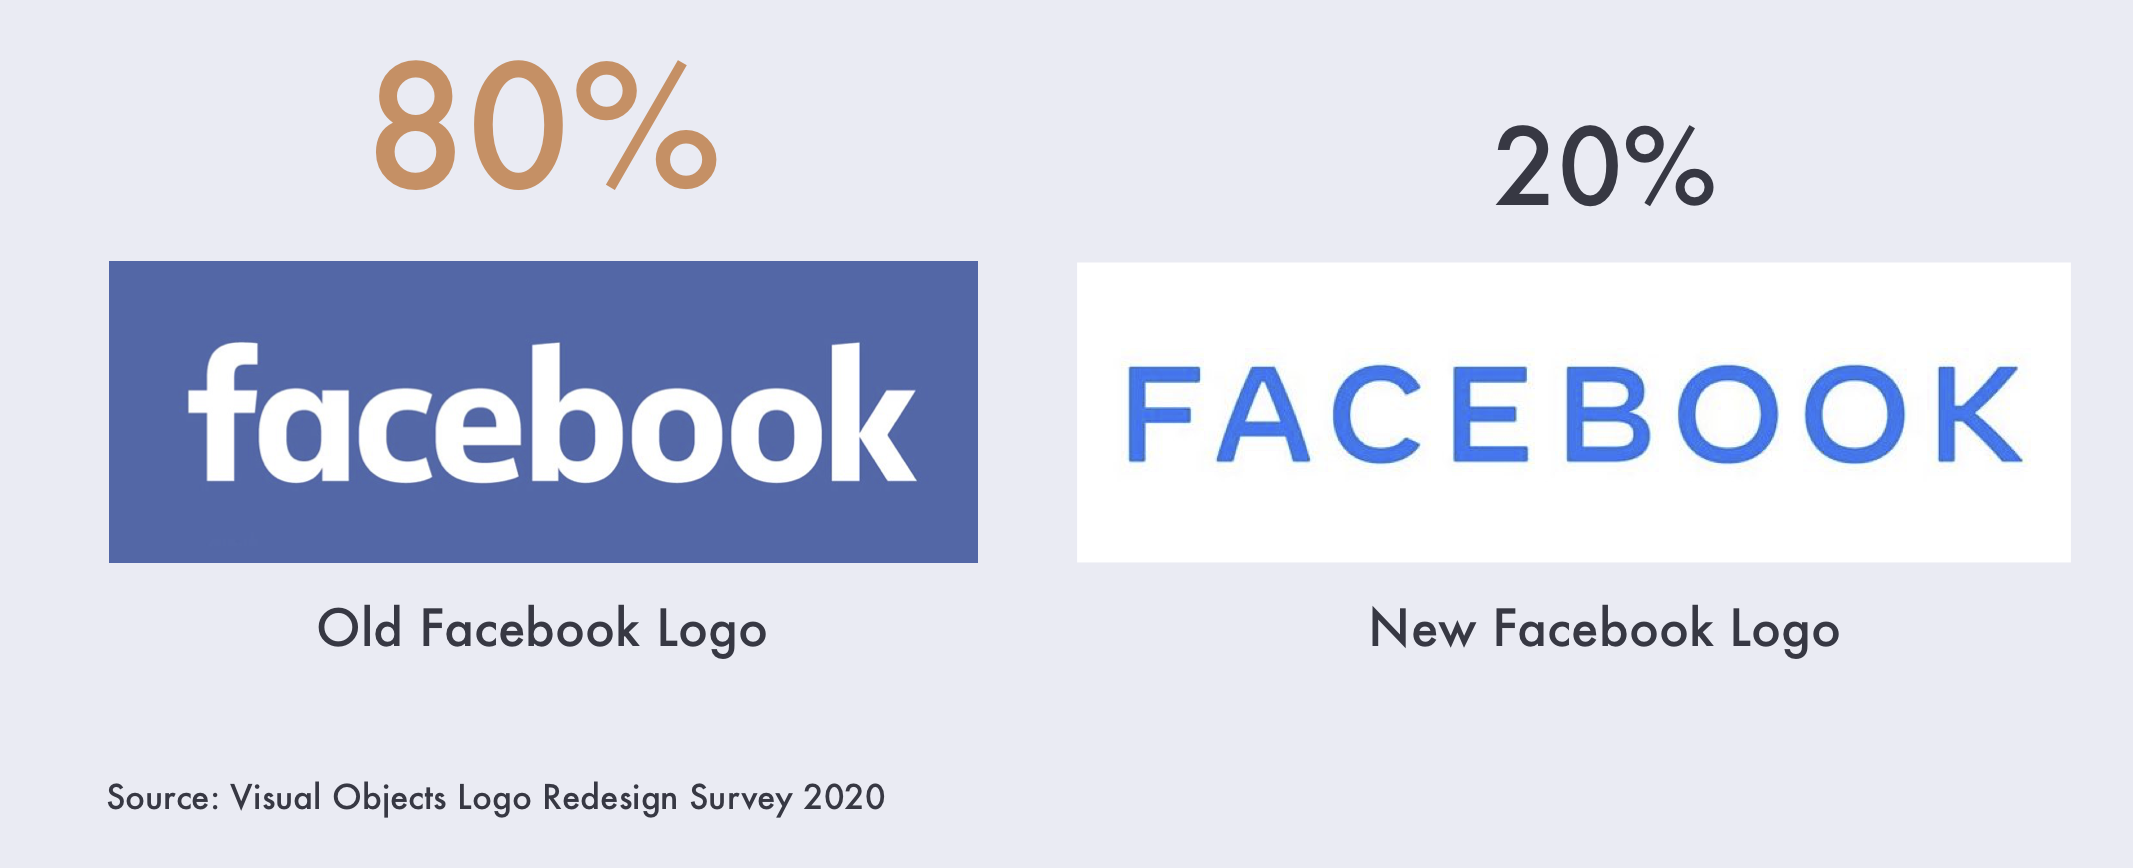 80% Prefer Old Facebook Logo